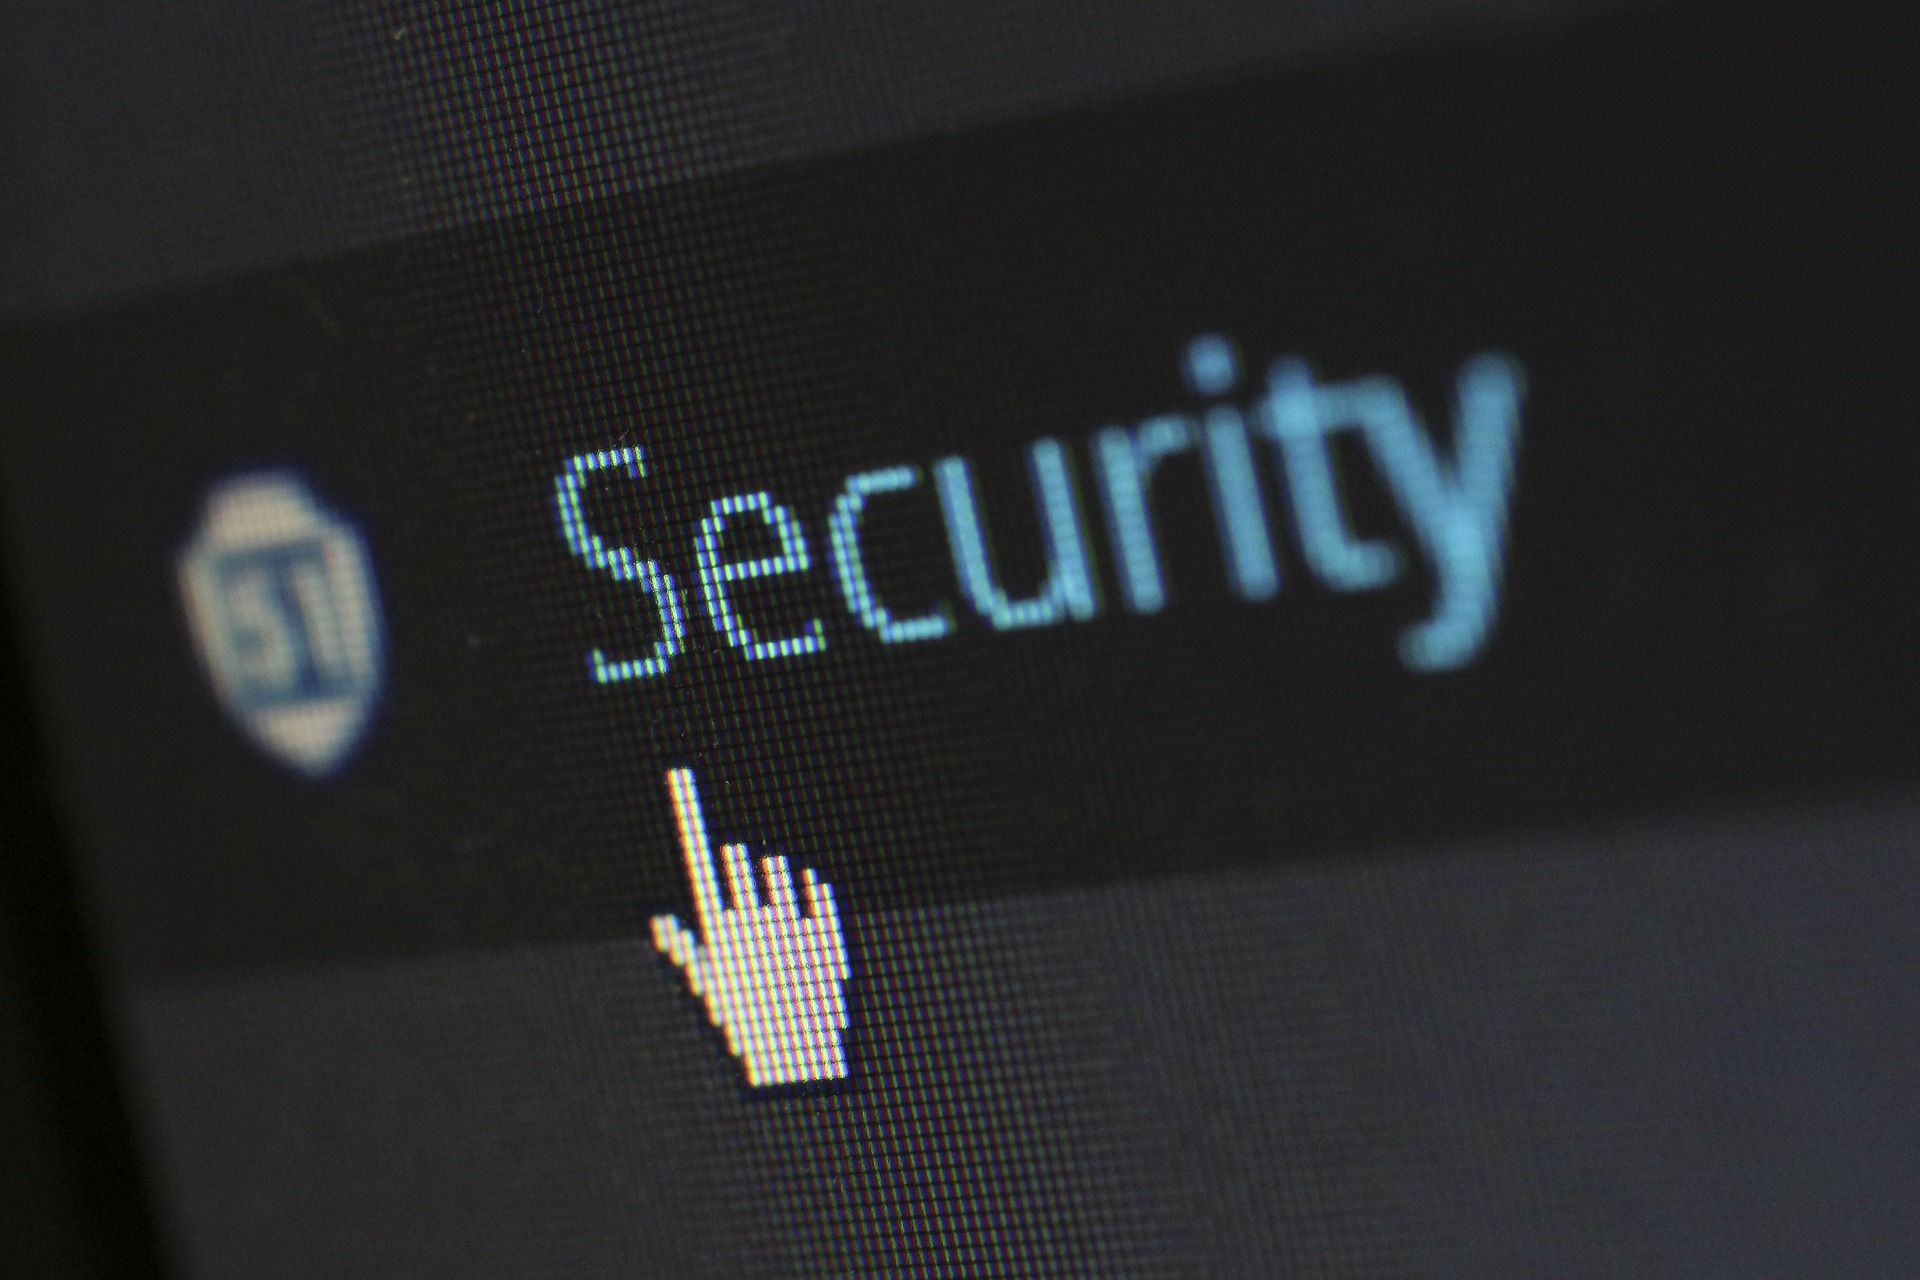 Website Security Q&A: Does my website need SSL?